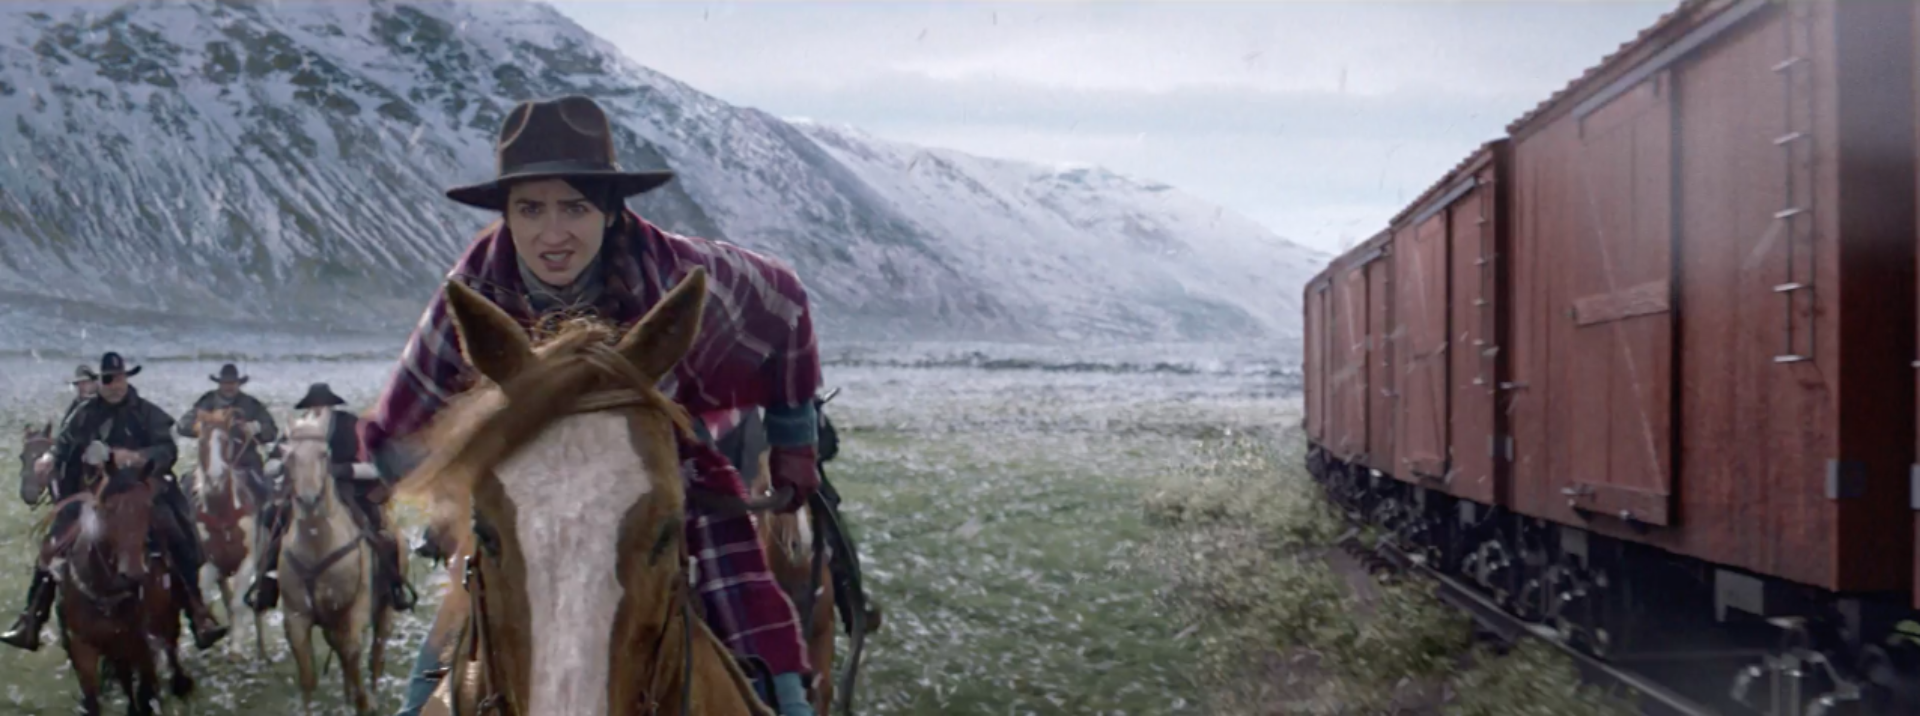 Kohl's Taps Martin Agency For 'Westworld'-Inspired Holiday Spot